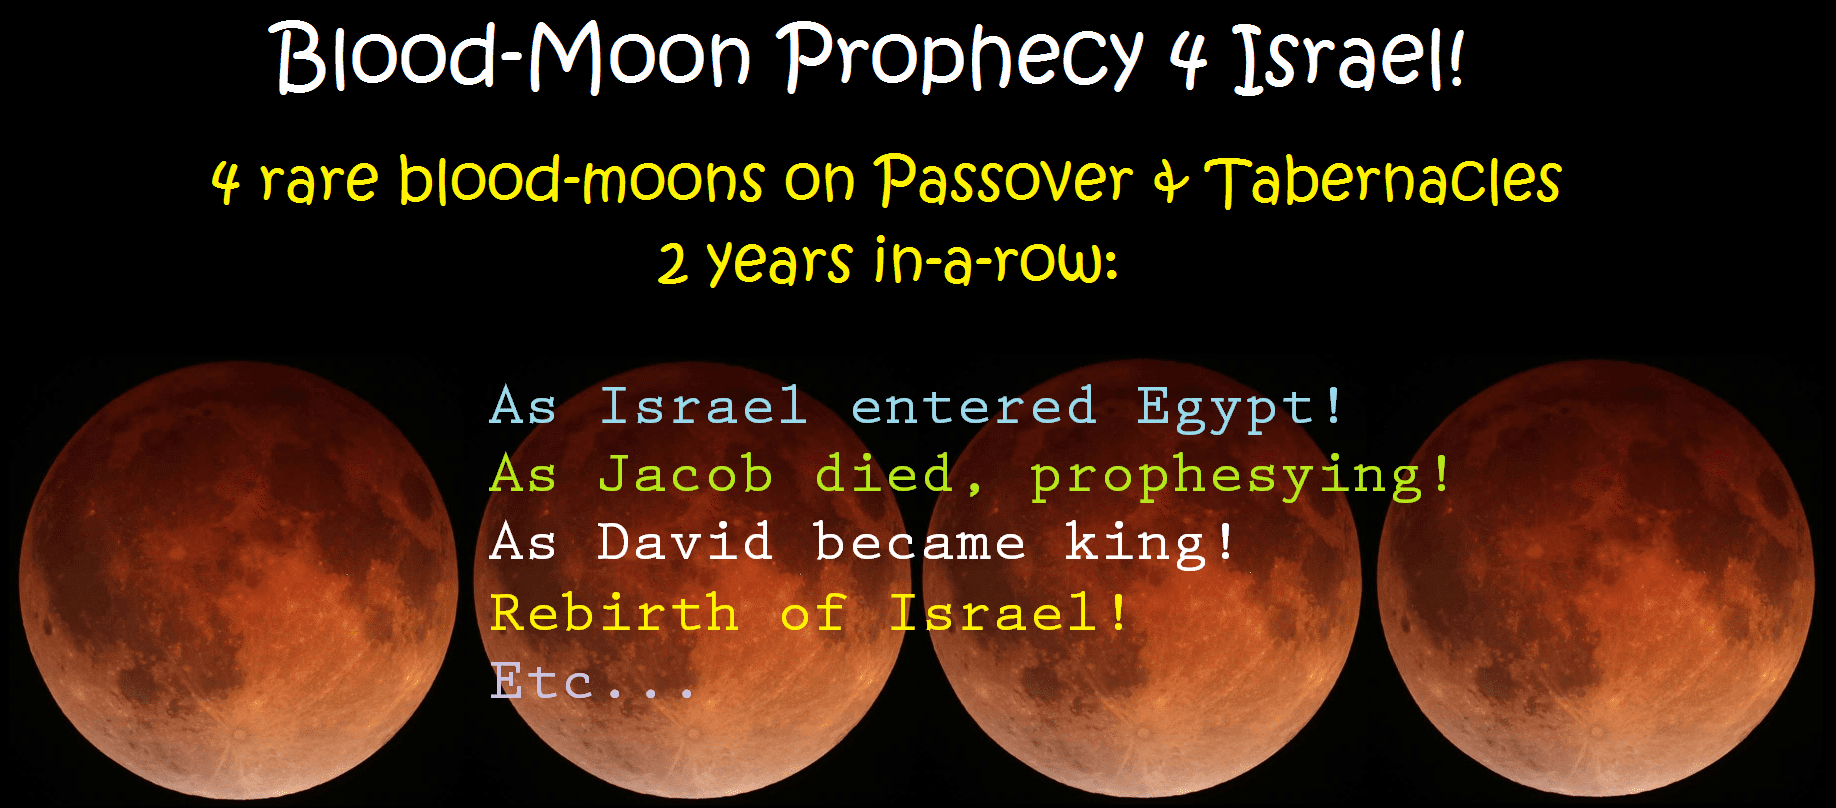 Blood-Moon Prophecy (Israel's Passover-Tabernacles Tetrads)